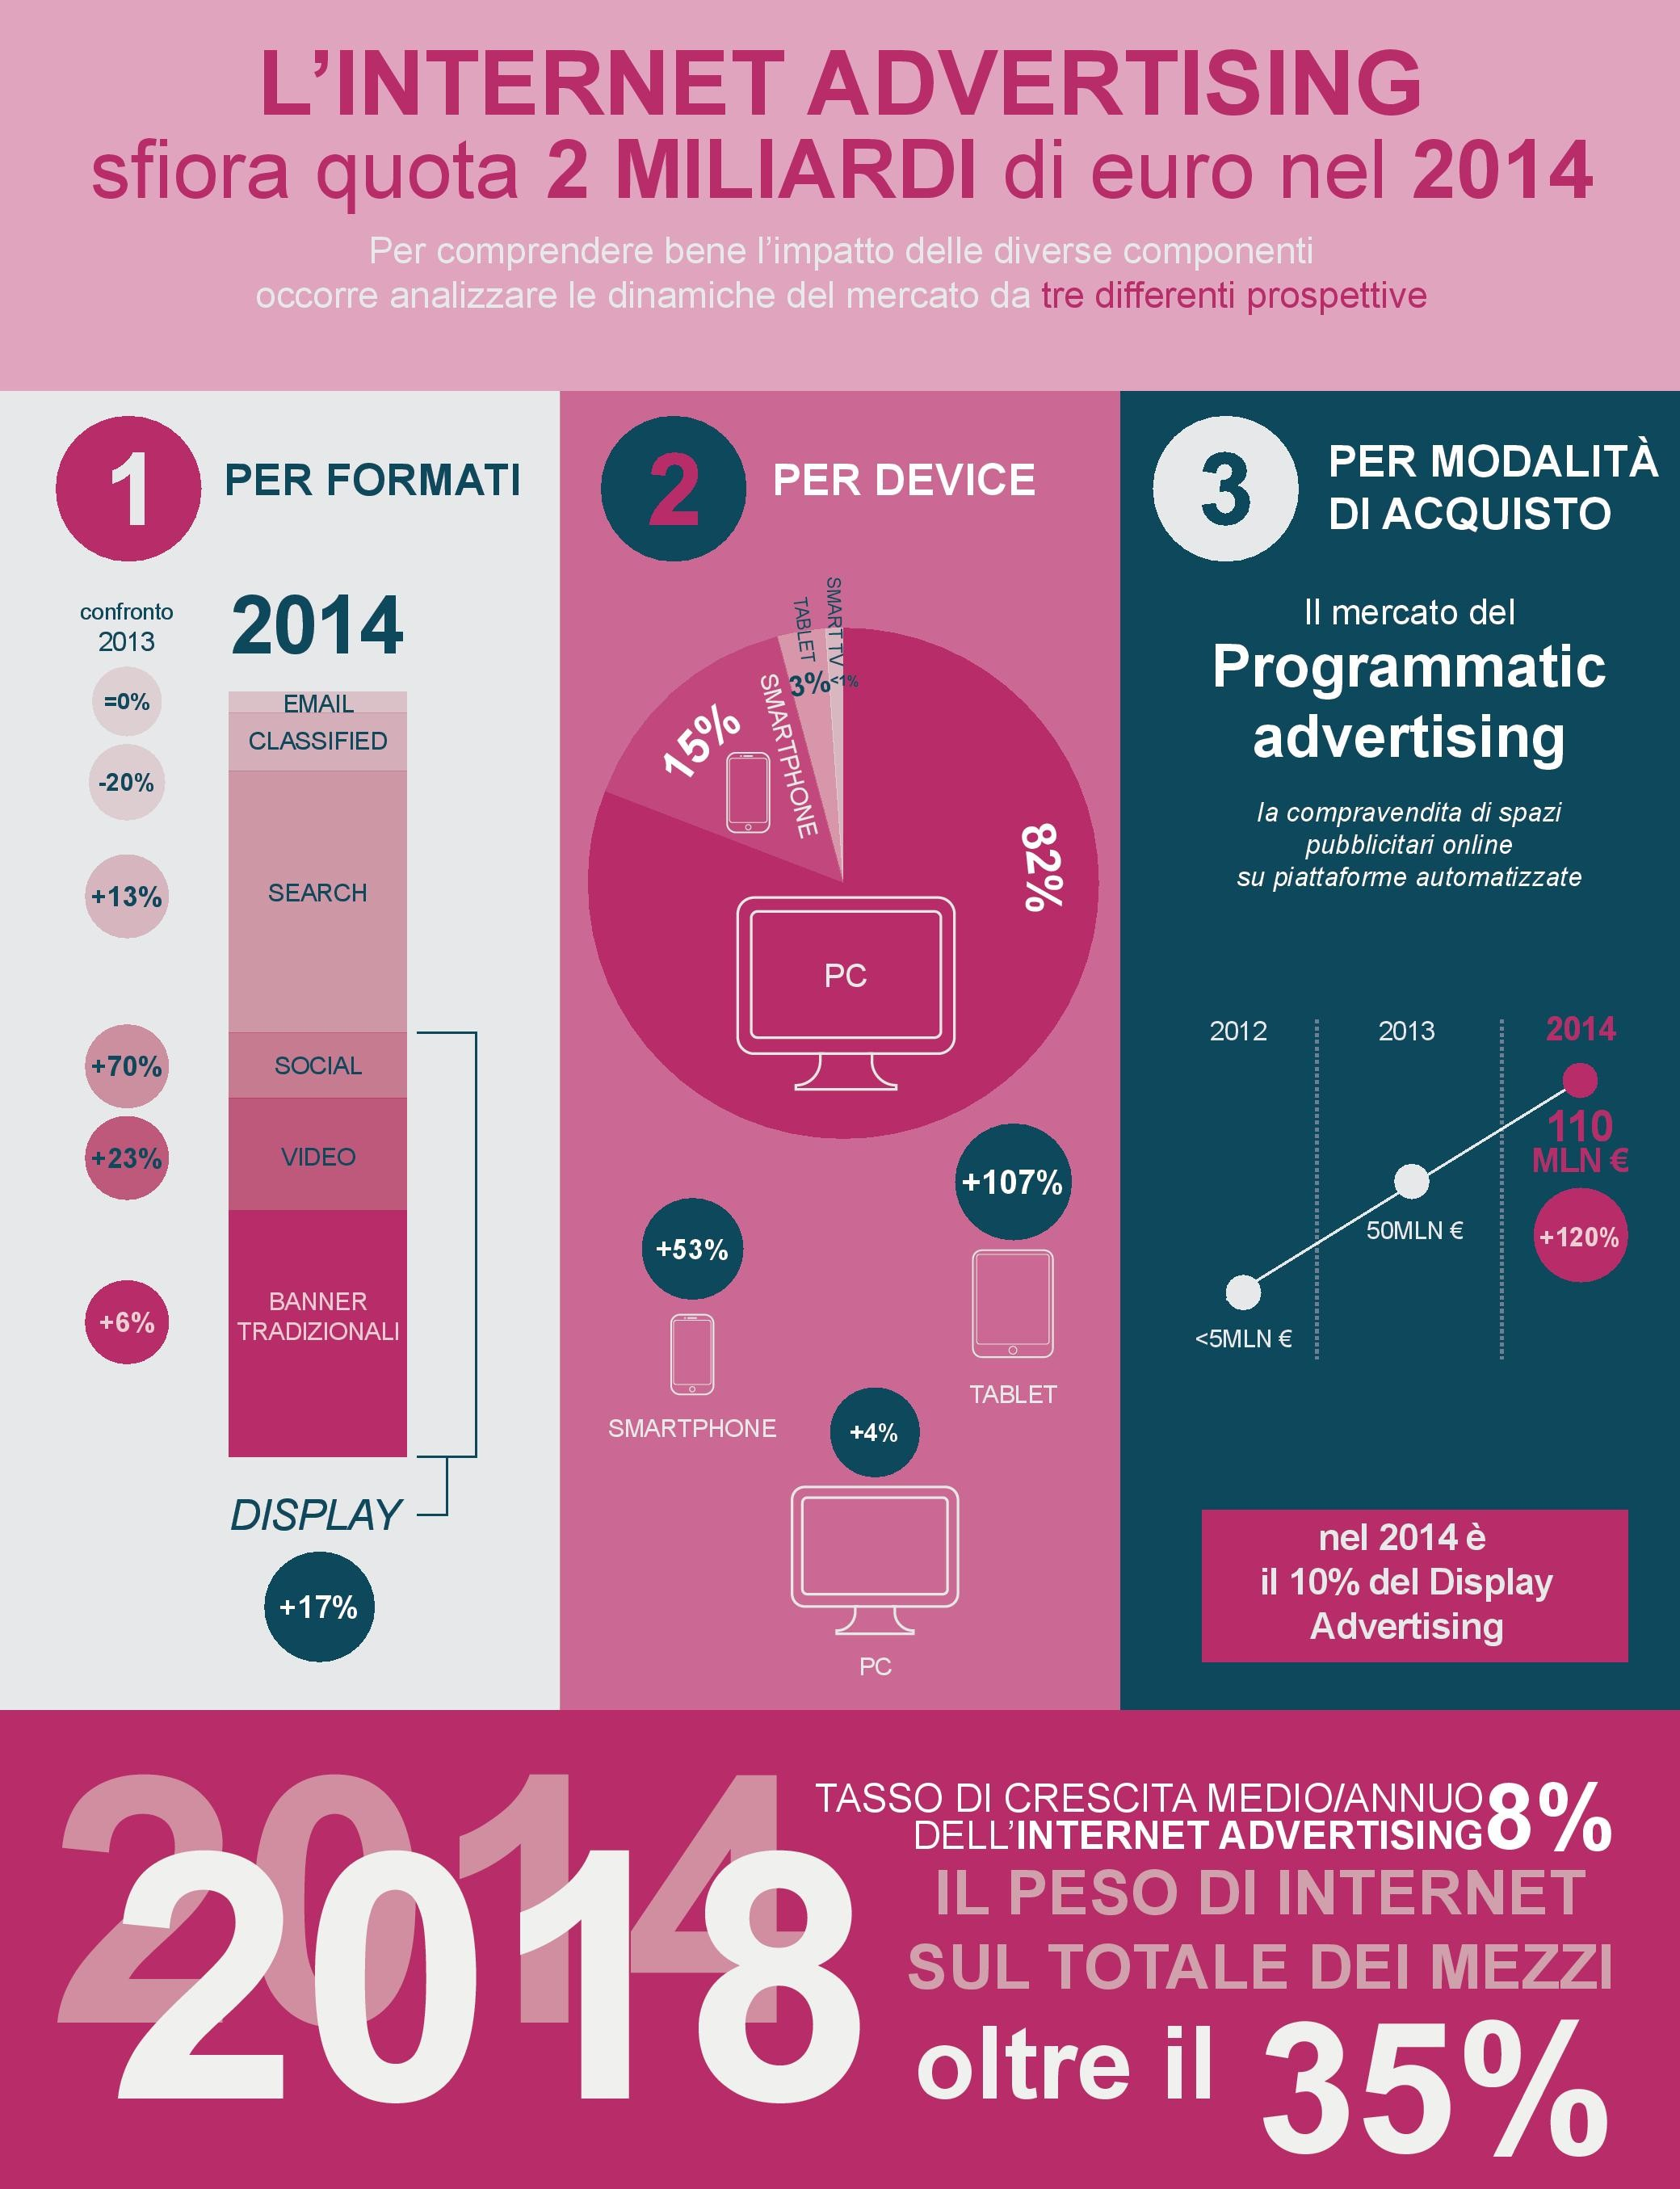 Ricerca Osservatorio Internet Advertising 2015